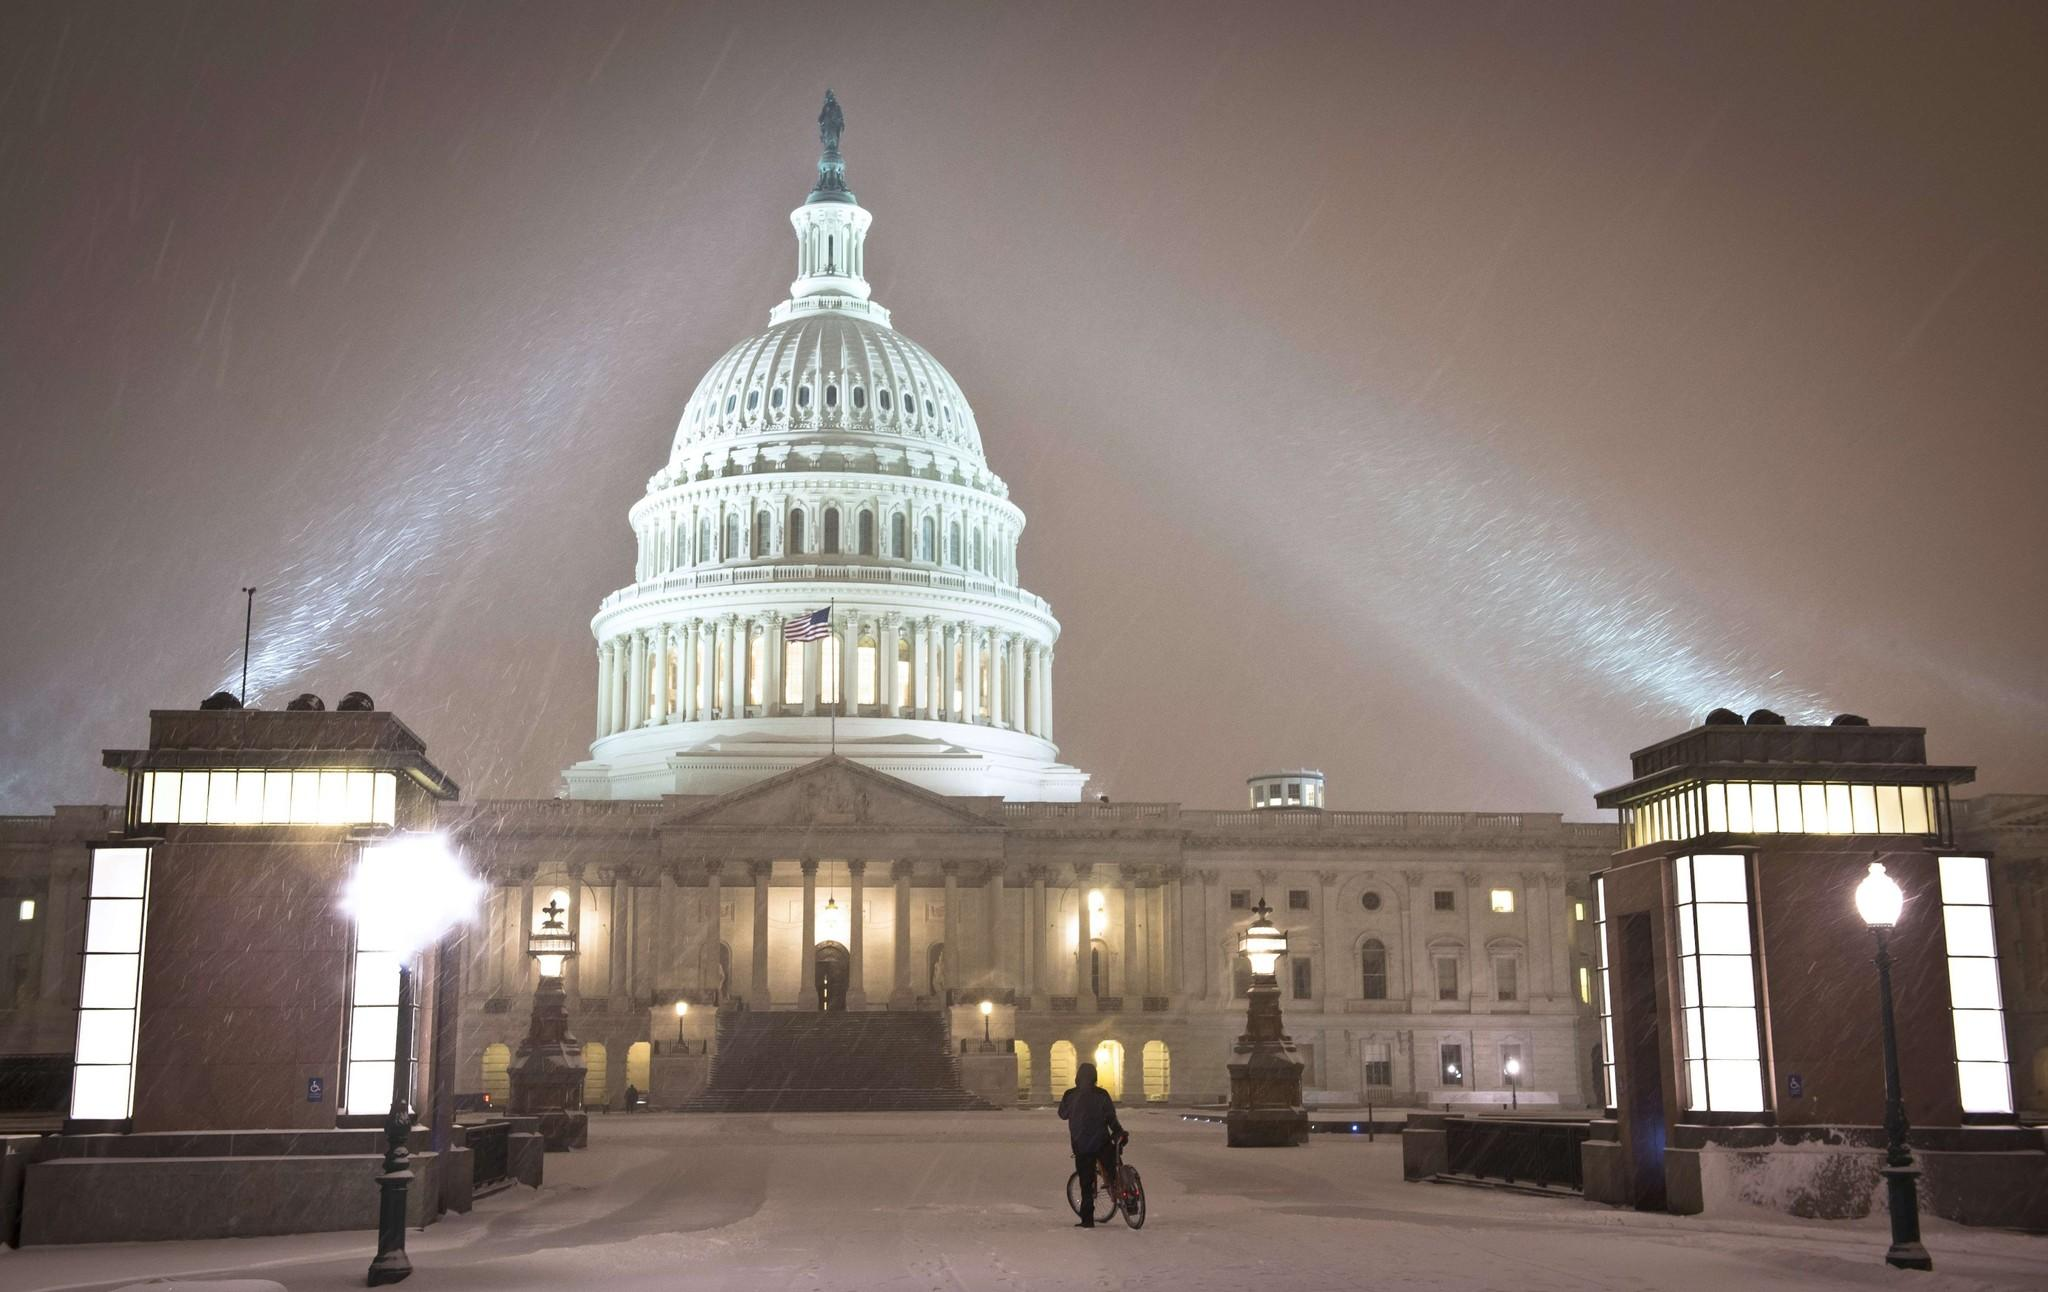 A cyclist looks at the US Congress building as a heavy snow storm hits Washington D.C. on February 13, 2014.